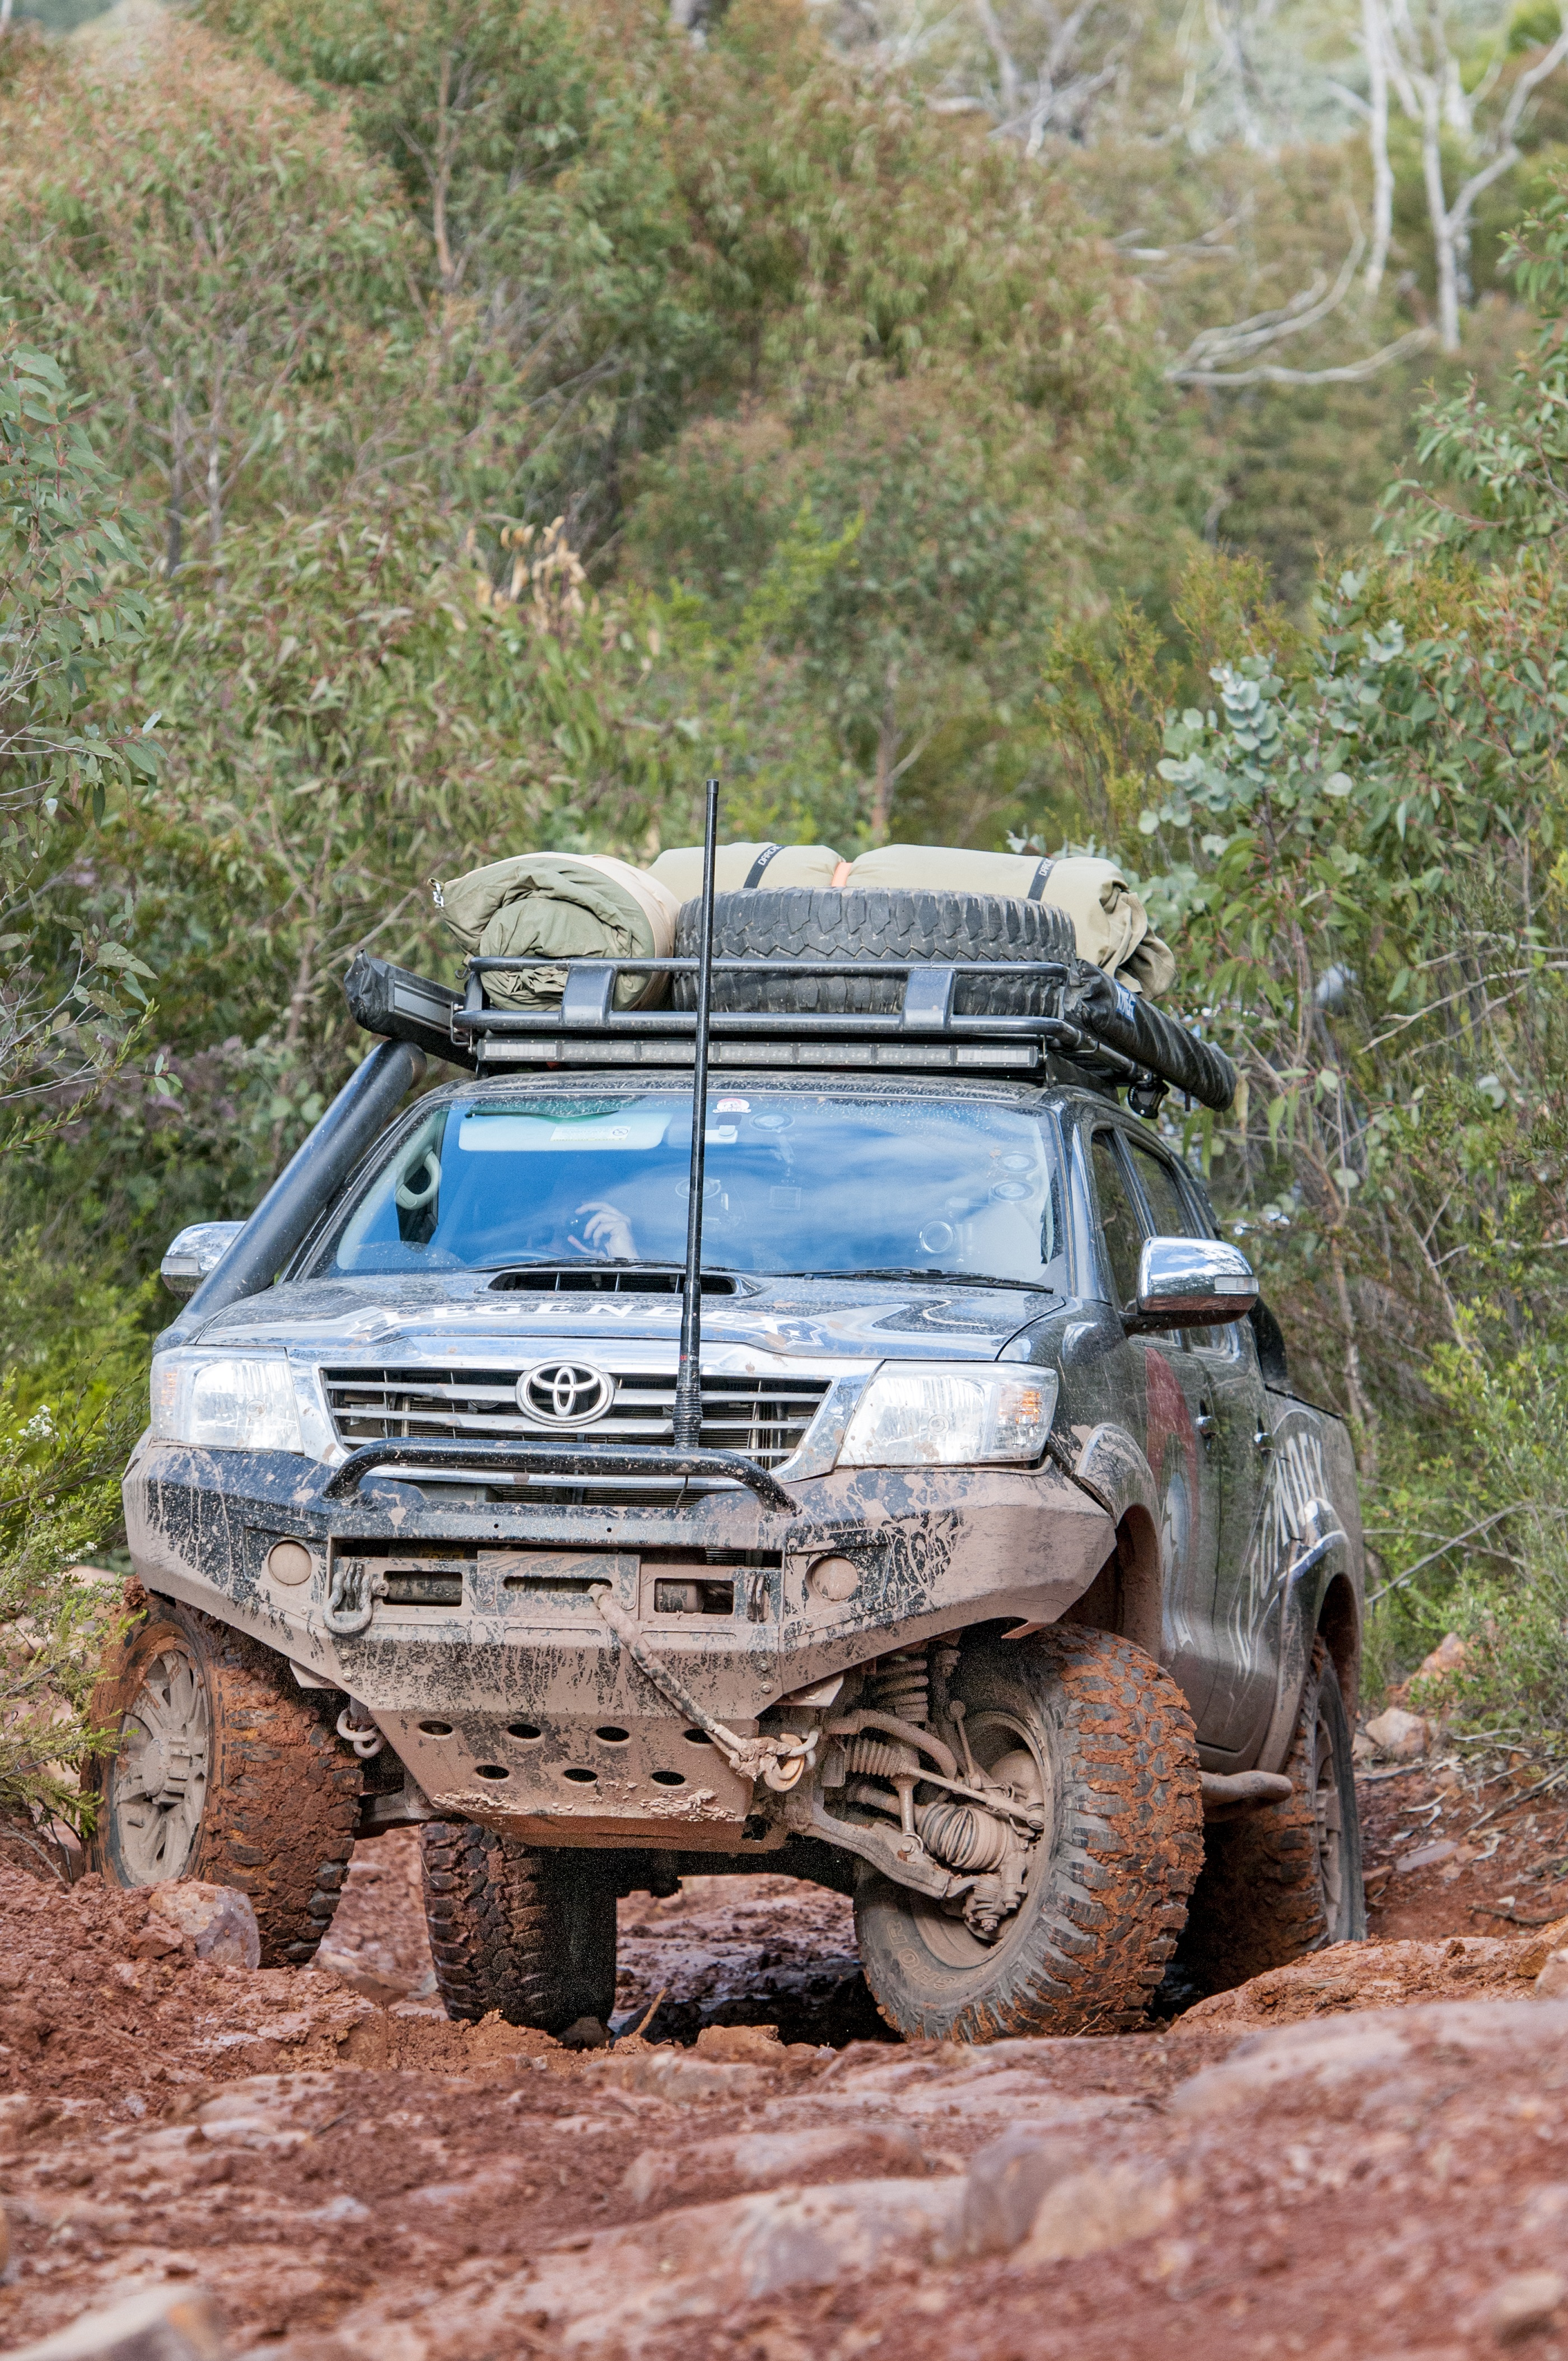 5 Best Bits of gear for your new 4WD! - image 160901-AvonWildernessDVD-Driving340 on https://www.4wdsupacentre.com.au/news